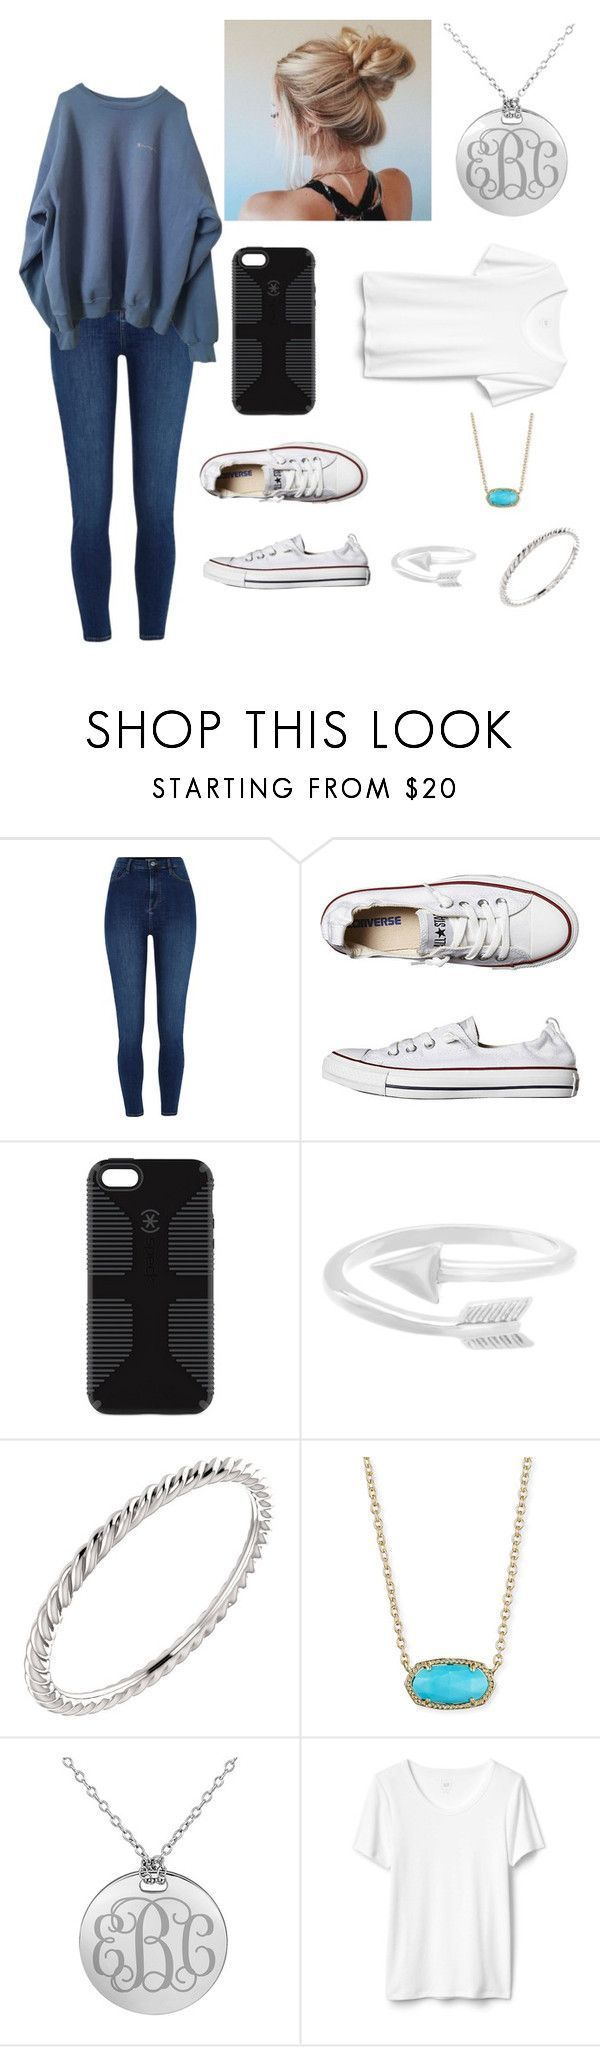 #lazyrainydayoutfit #essentials #converse #regentag #sterling #polyvore #melhunt #outfit #kendra #outfit #scott #rainy #speck #lazy #lazyLazy rainy day outfit von melhunt auf Polyvore mit Converse, Speck, Sterling Essentials und Kendra Scott #rainydayoutfitforwork